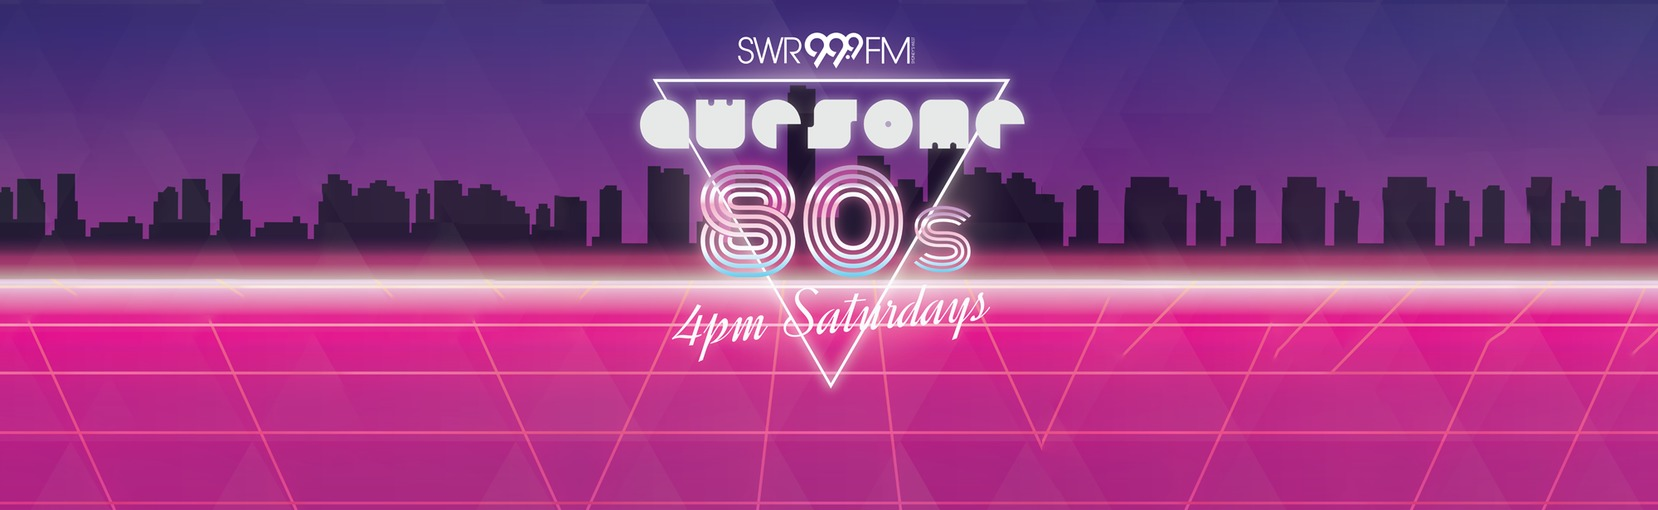 Awesome 80's with Tim Williams on SWR Triple 9 FM